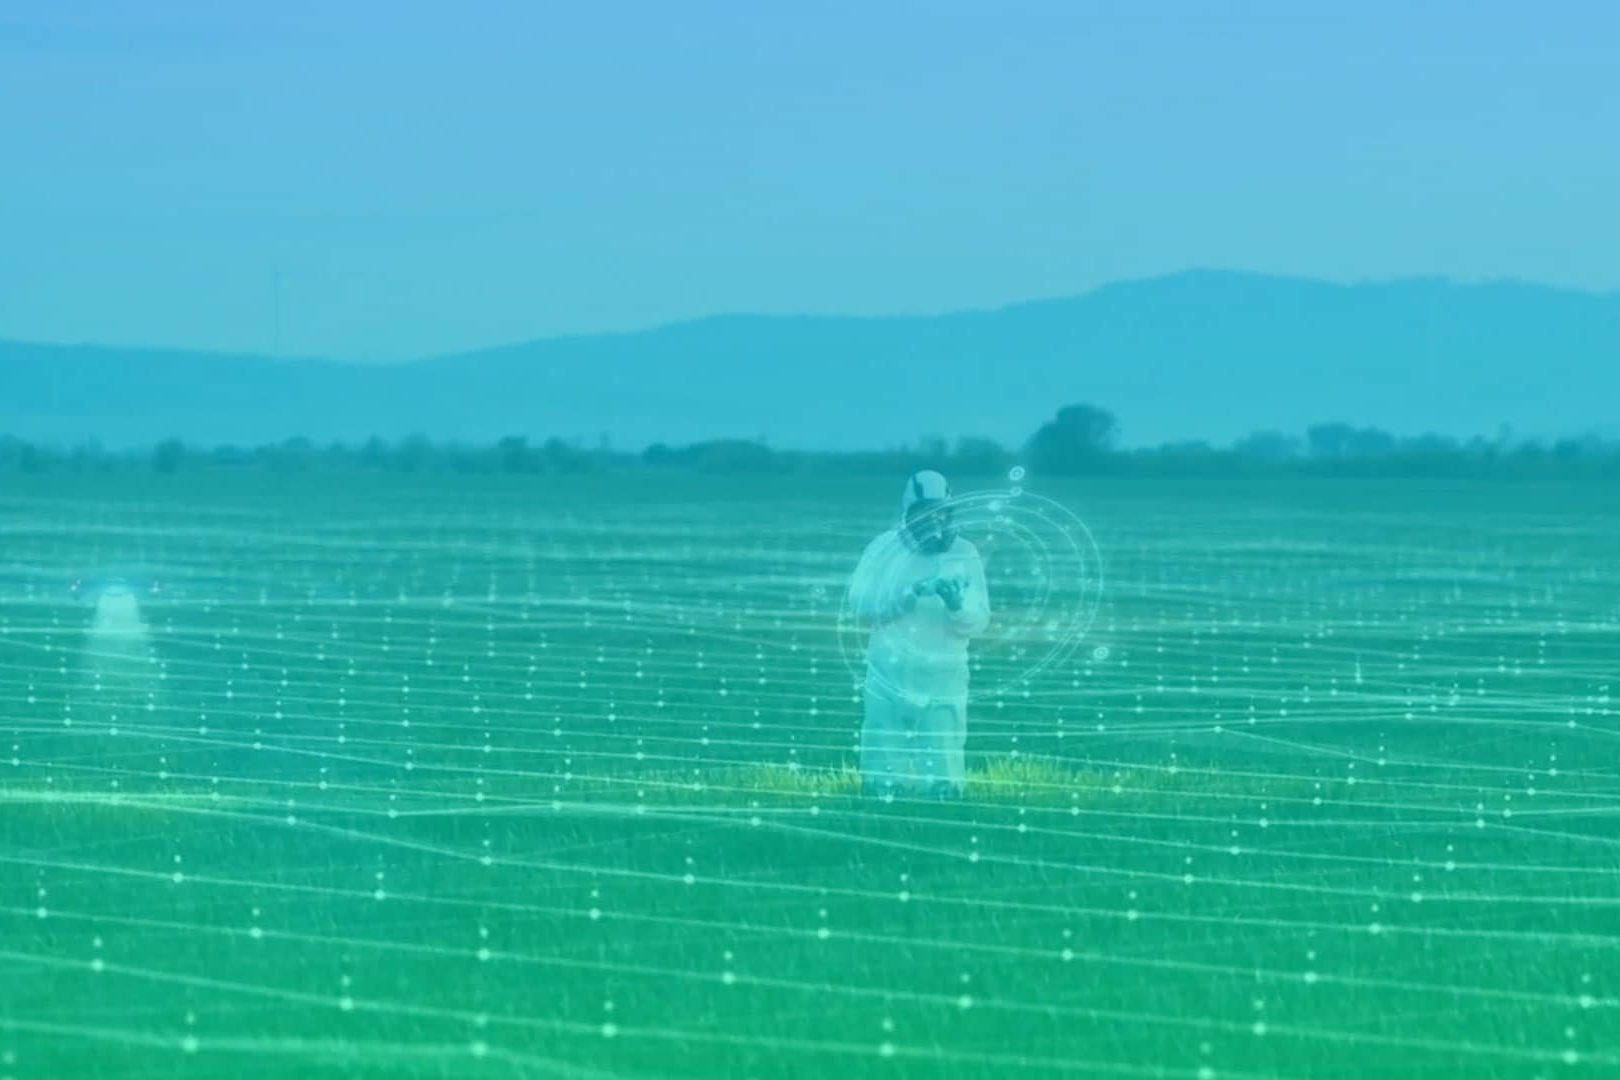 Artificial Intelligence: Improving Harvests and the Human Experience